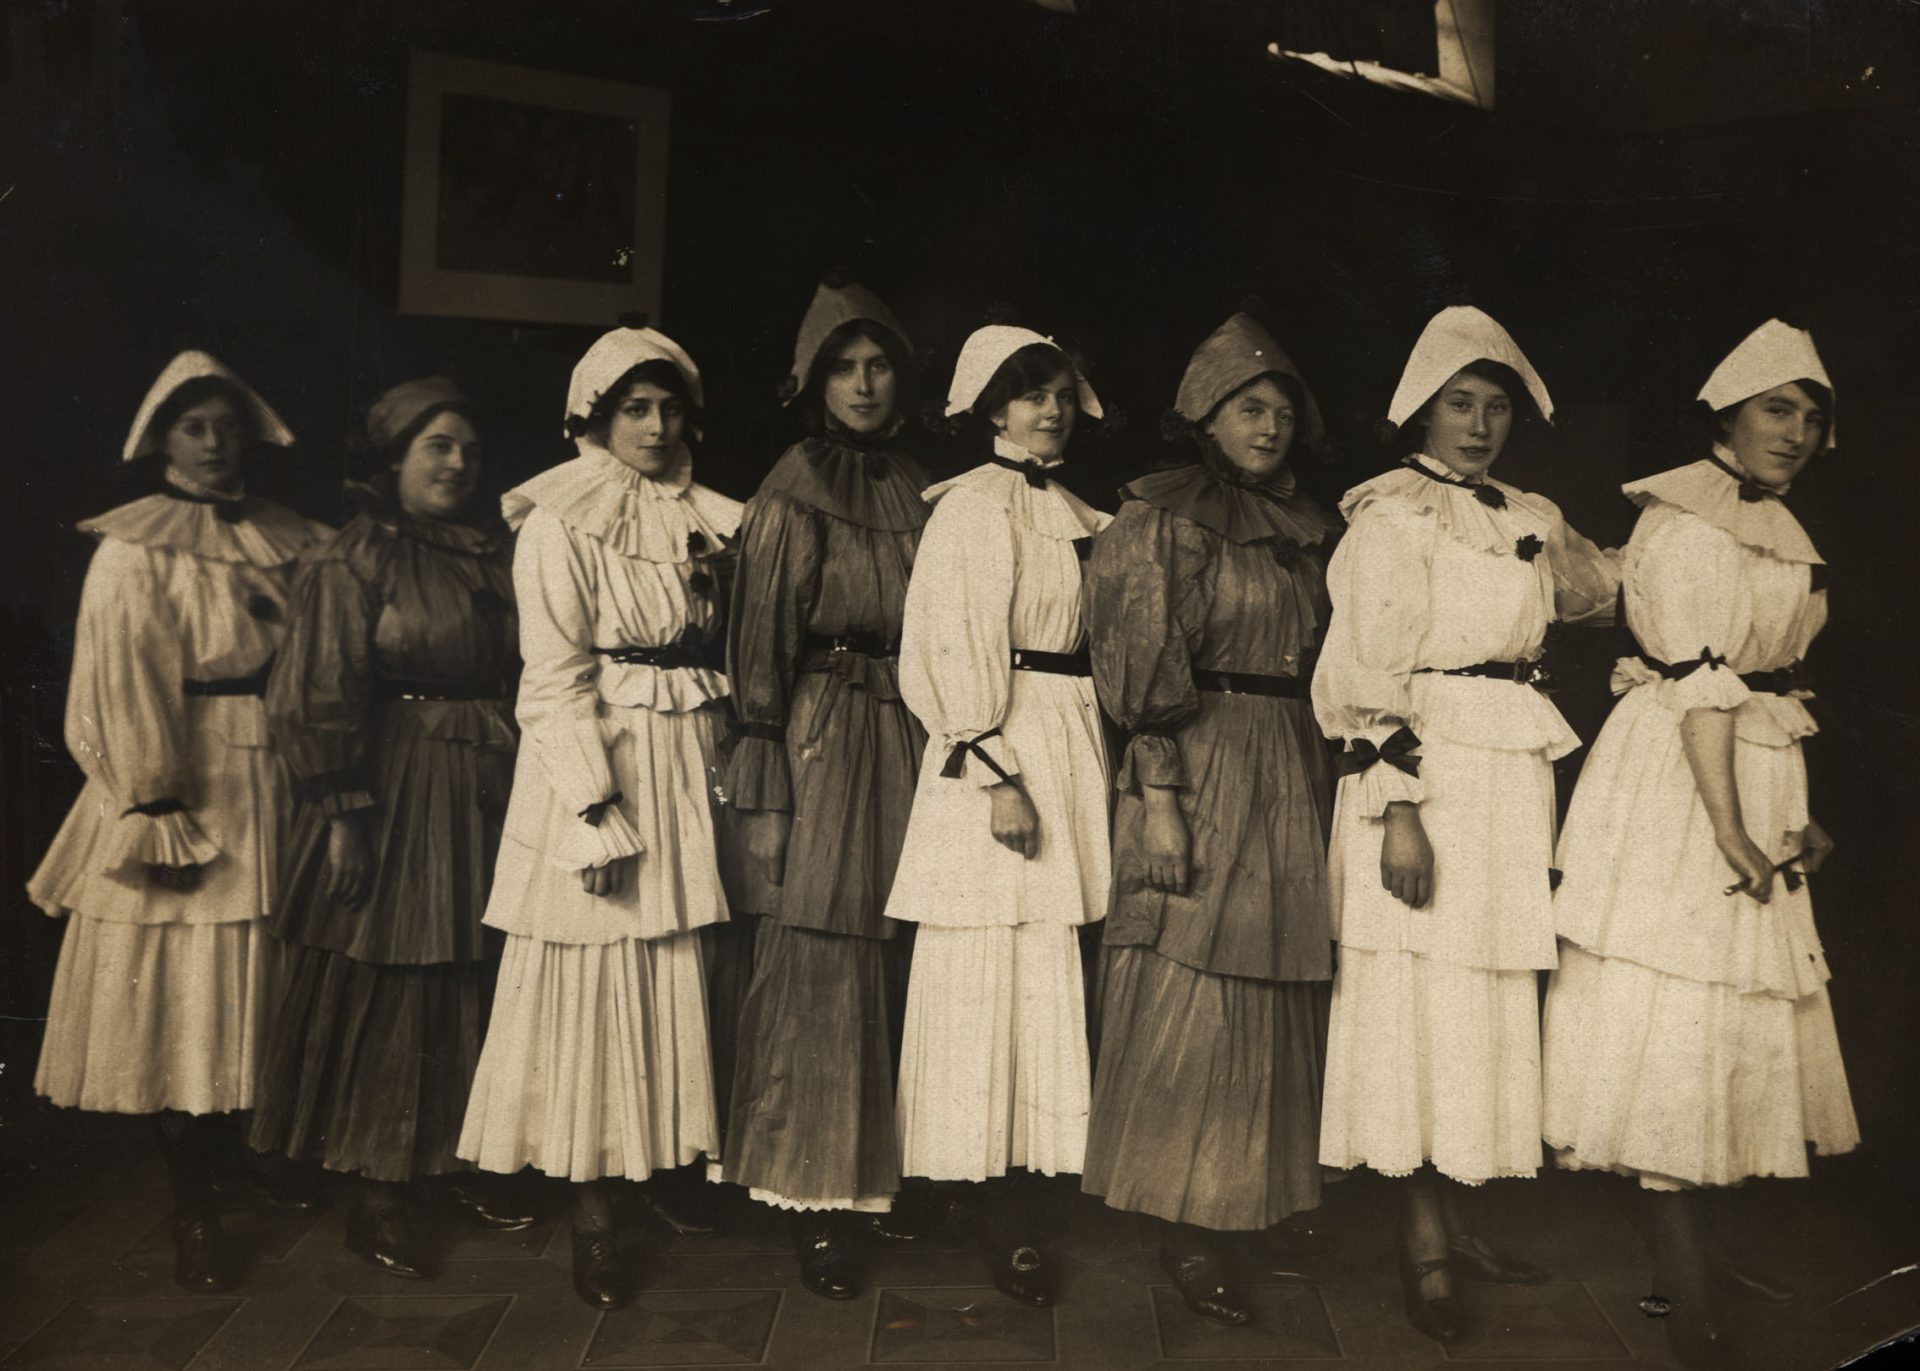 War Time Nurses entertain Wounded Soldiers This is a photograph of sisters and nurses dressed in costume for a Christmas performance at 3rd Northern General Hospital, Sheffield. The photograph was taken in December 1916 and offers a caring and humorous impression of the women working in the Hospital. Reference: DF.BGS-4-7-1 The photograph is part of a larger collection that shows a rare and intimate glimpse in to the Life of a Wounded Soldier recovering from the horrors of World War One. This particular set of photographs is taken from a collection held at Tyne & Wear Archives Information and photo from https://www.flickr.com/photos/twm_news/9490957061/in/photolist-fsFCSH-hz3gCY-4jzbzQ-q66ZrE-HWVZ6f-ptDpcA-bV8e4k-9WYHBp-69xVJT-ovx8G4-4jz73Q-22QBPsW-a5ZMA1-5qCF2q-CcM7V9-awxRsS-GoGWaQ-igKH3n-q1mdPm-4jv8L4-4jz9DE-ft4pso-4jyC7r-4jza33-CBAQRh-hwRfMy-p7dJhK-4G3xux-5BUsv9-4QjZUo-hxANRh-hwSDdH-a5JVno-23rDLyQ-GoGQrA-4jzbLL-9rVbQn-6ivpkL-4Qt4iD-qq17hN-bWHb7P-VGu6HZ-iRwZ9V-Fn6cXS-FgcRiP-htWNUY-qjCKby-C6ppBV-4orZRC-au3QkK